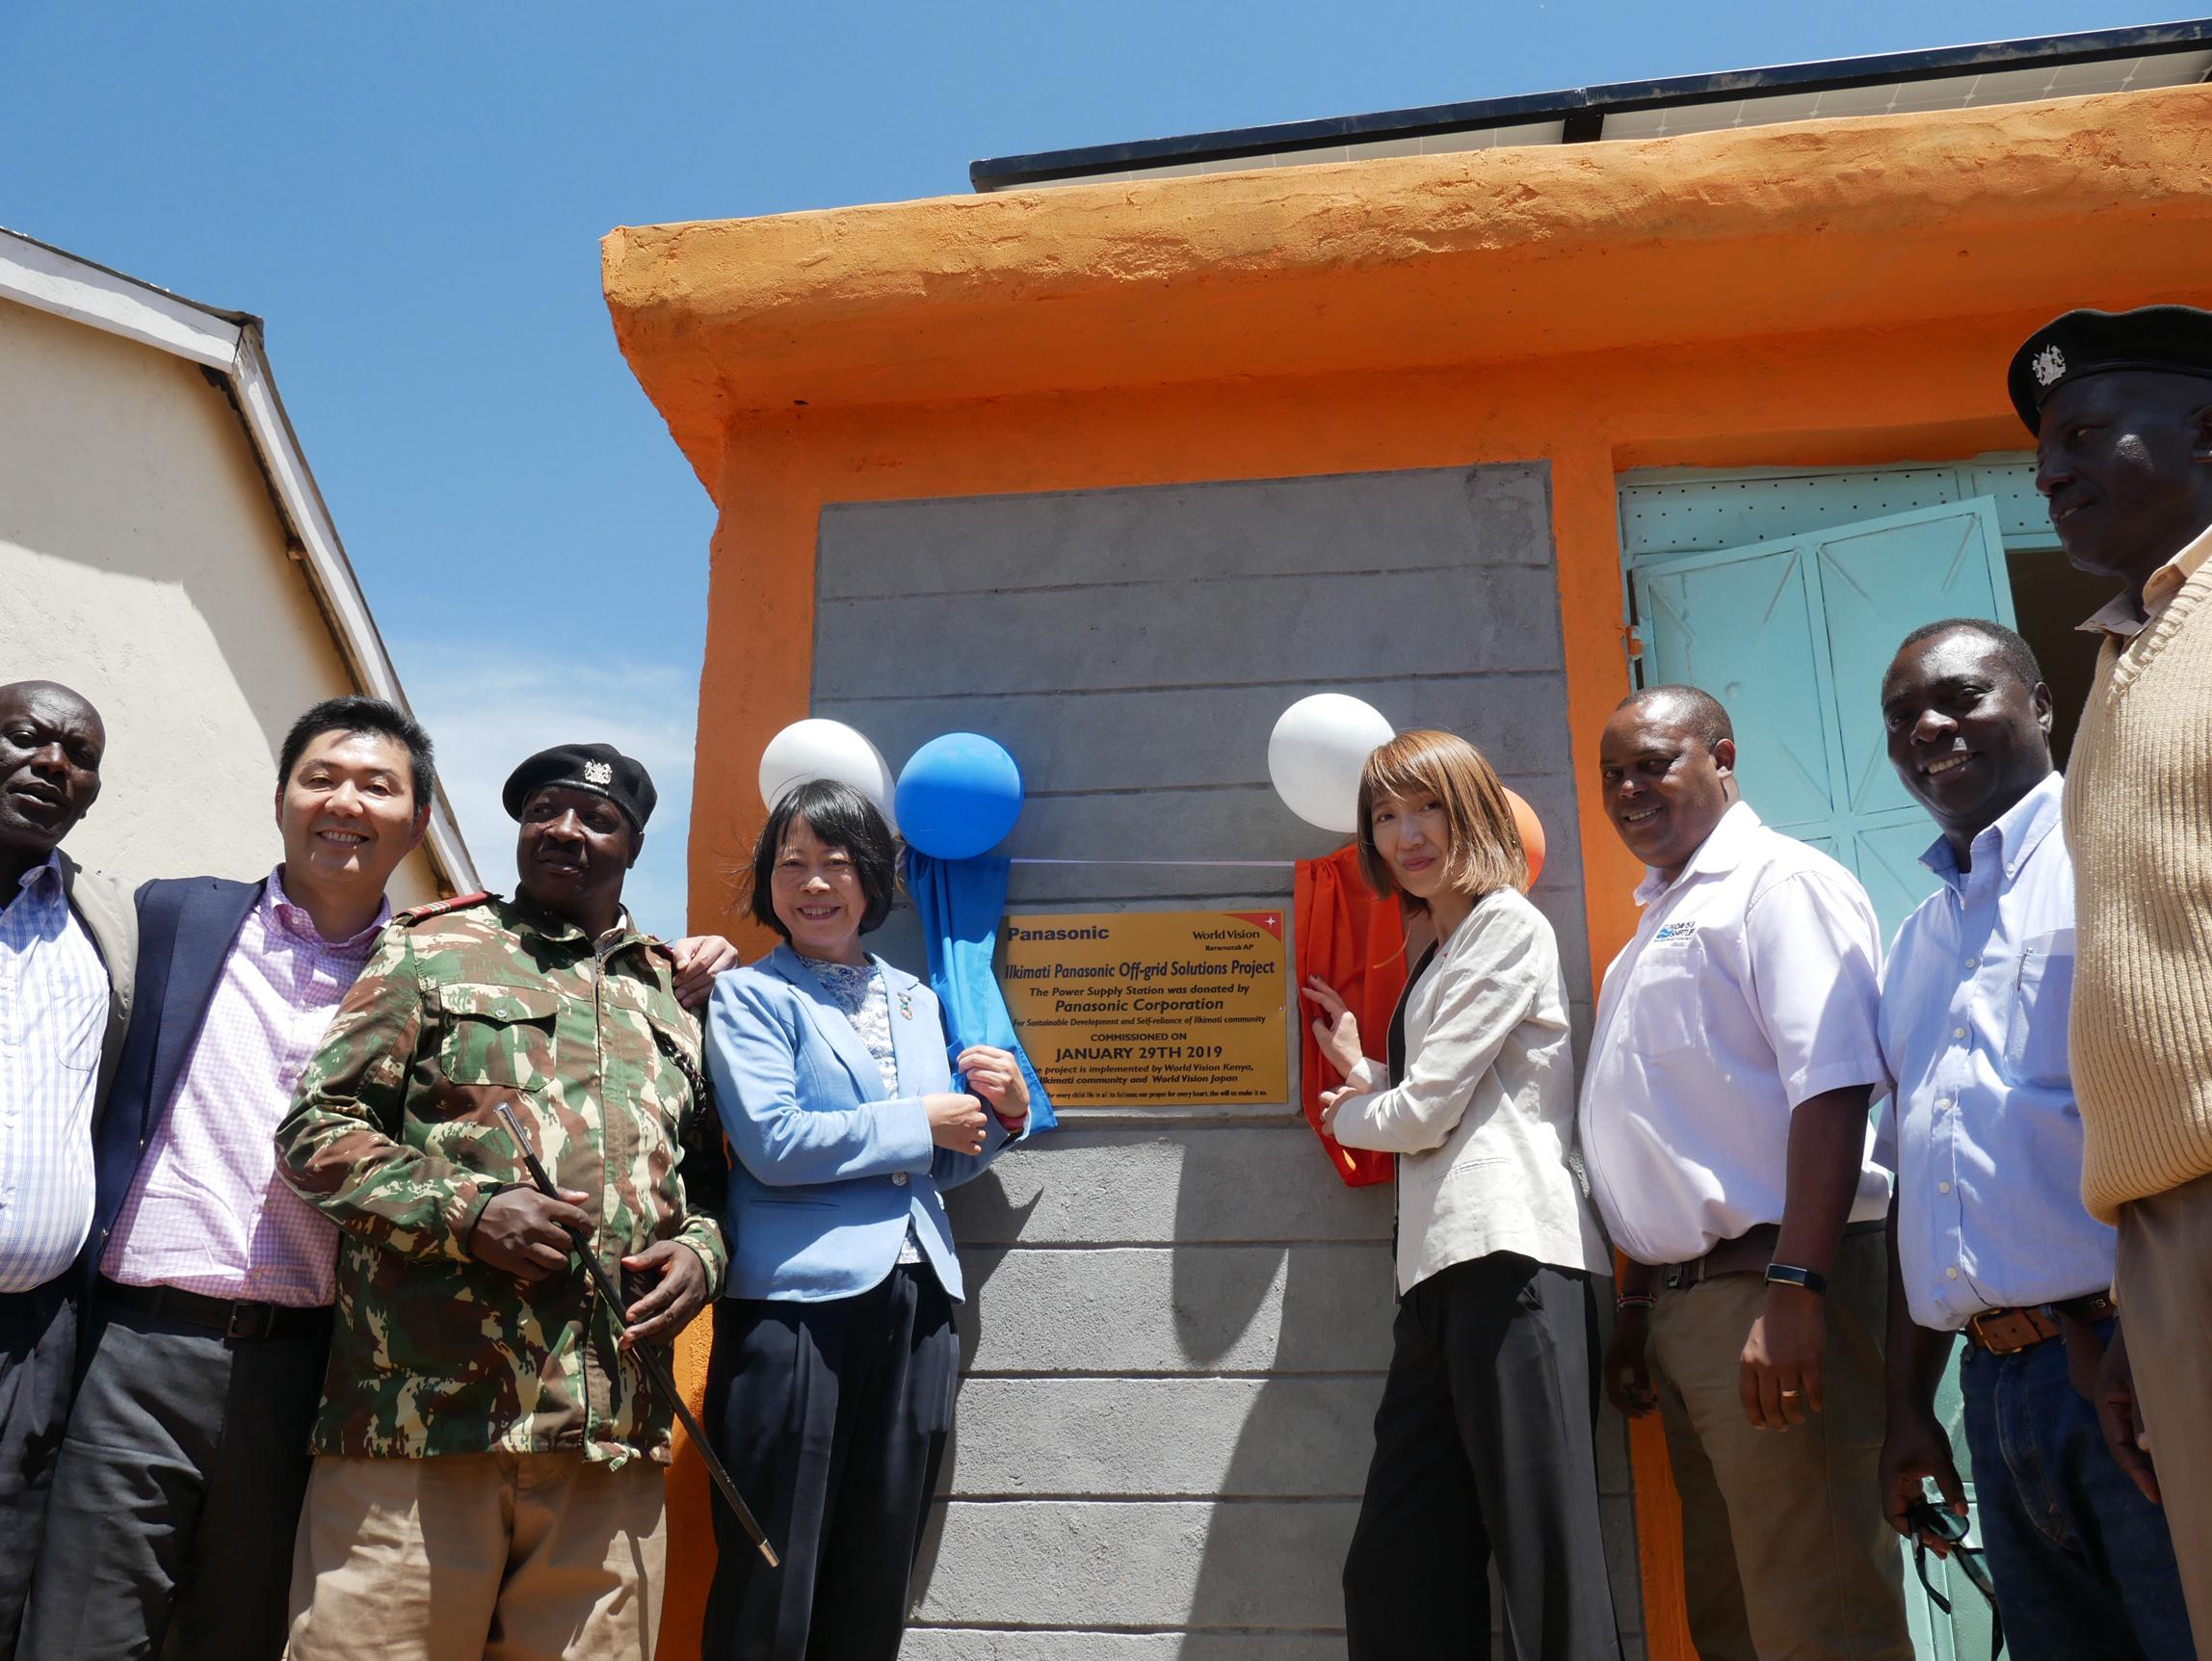 photo: the ceremony of Off-grid Solutions Project in Kenya